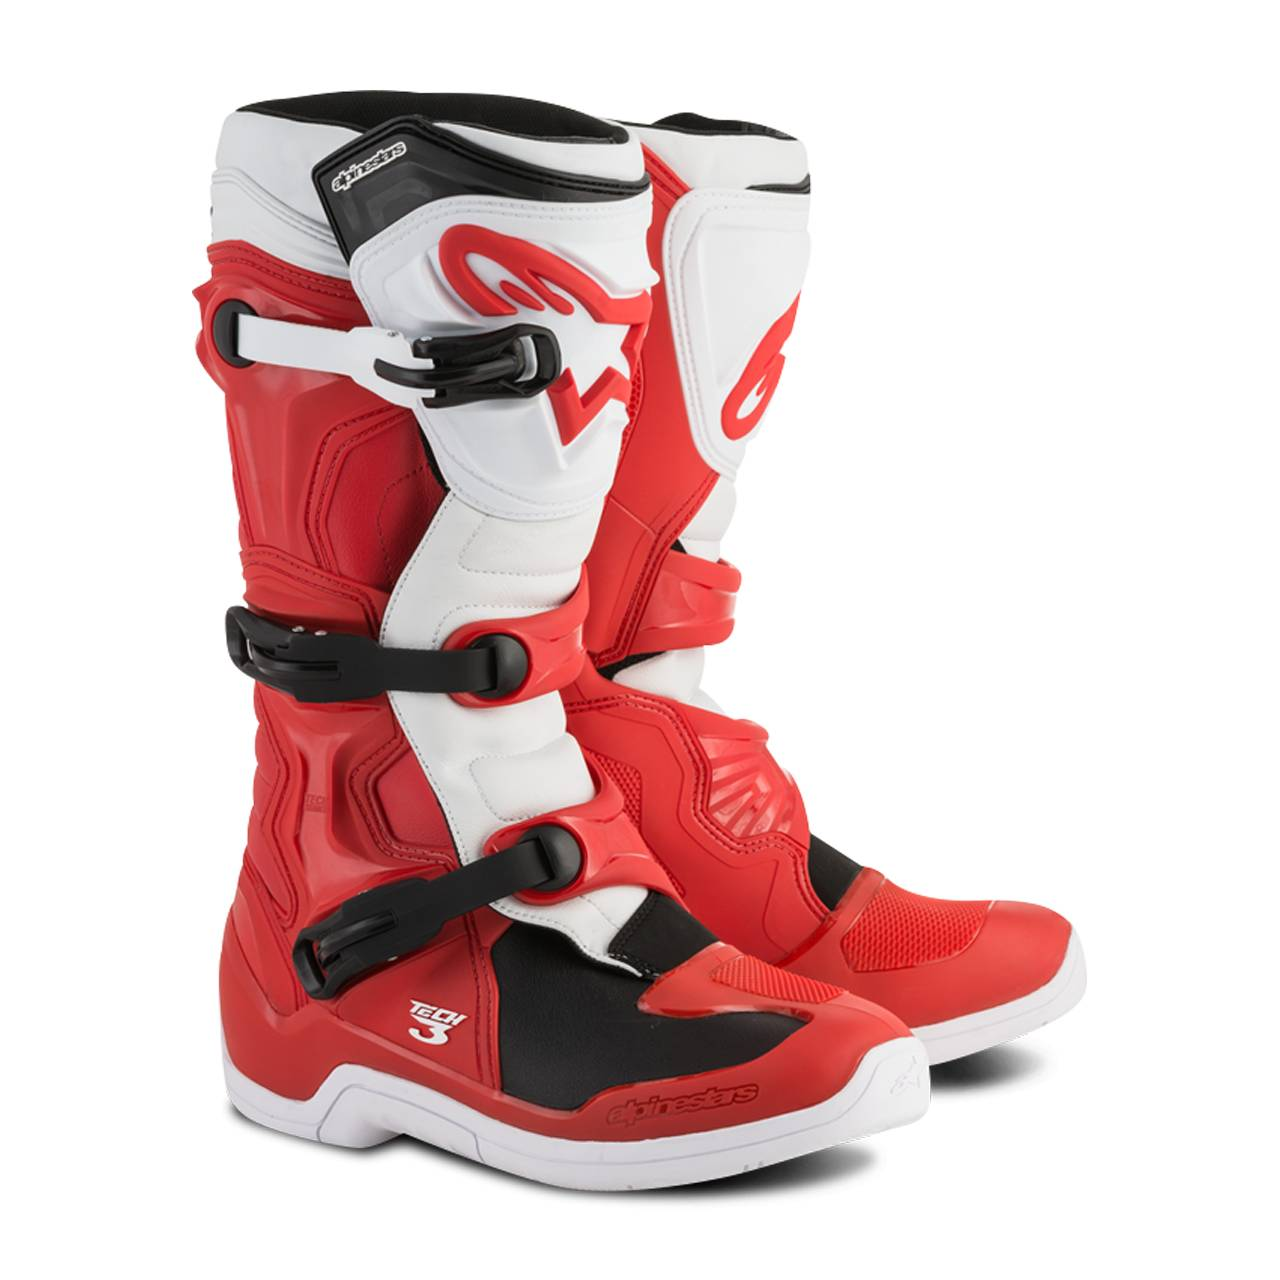 Alpinestars Bottes cross Alpinestars TECH 3 Rouge-Blanc